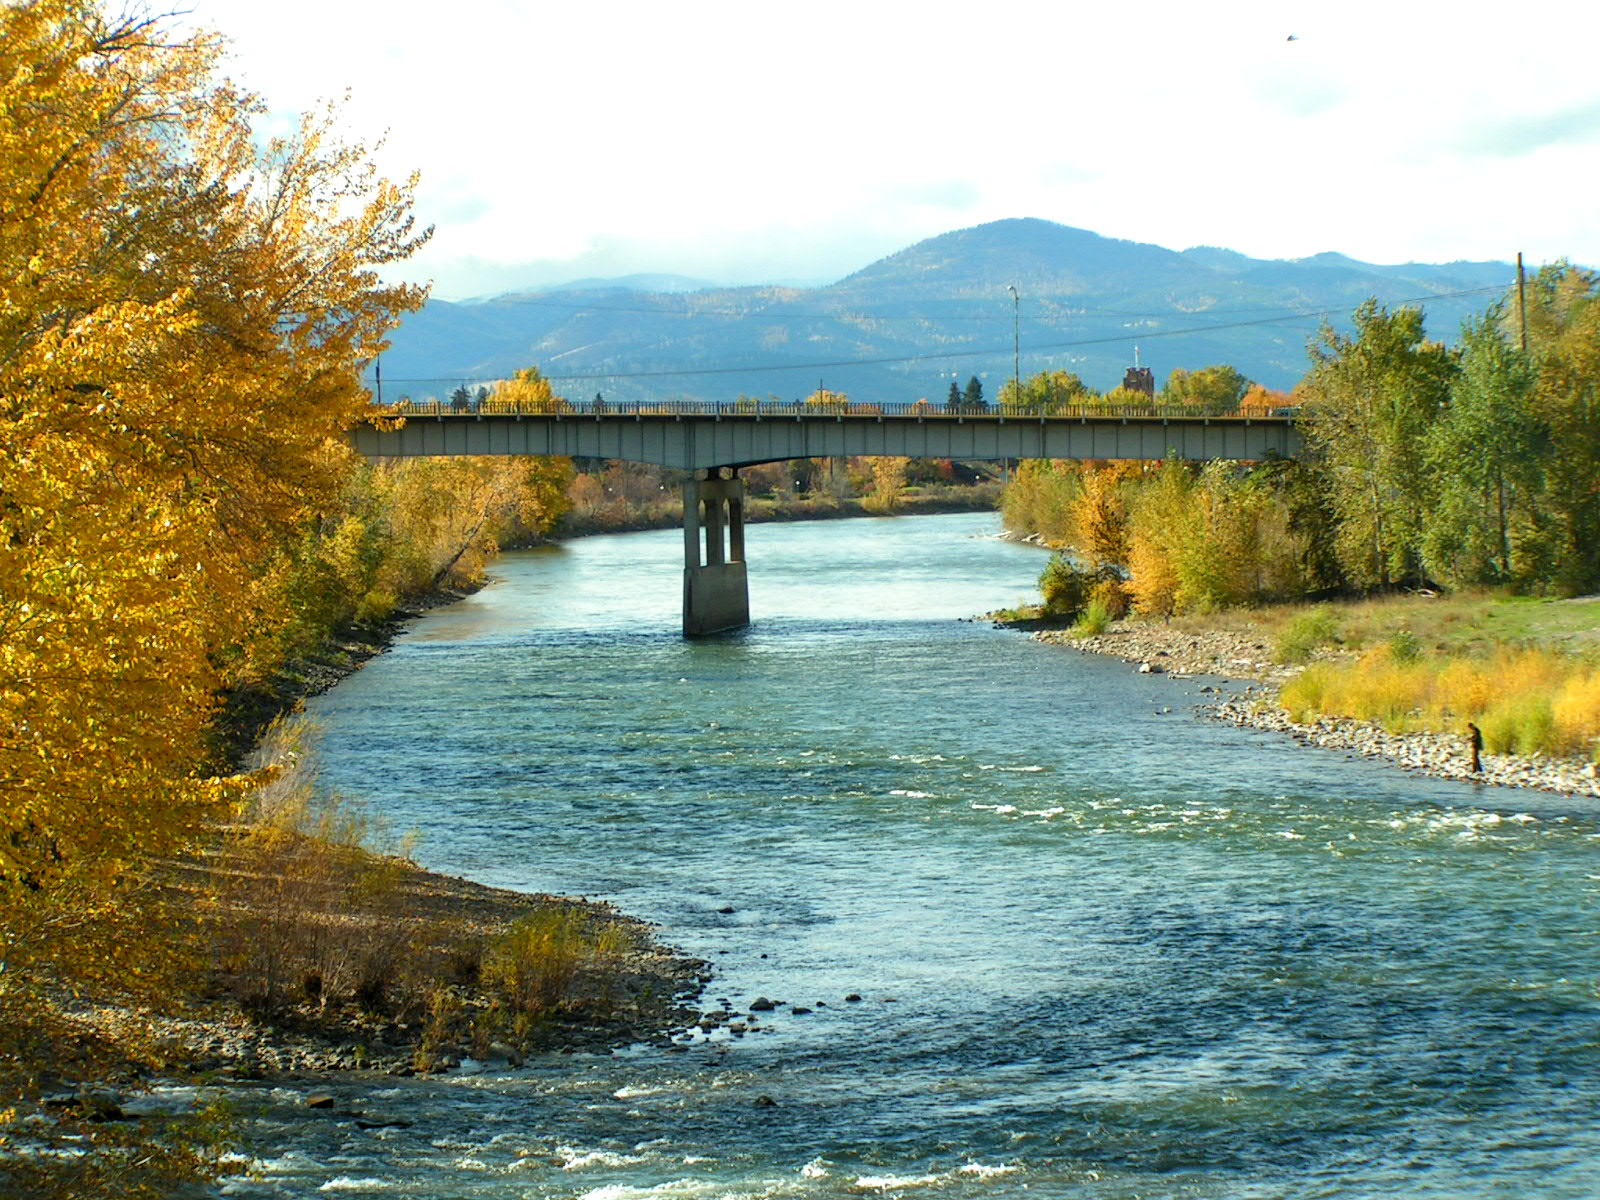 The spectacular Clark Fork flows through Missoula, Montana.